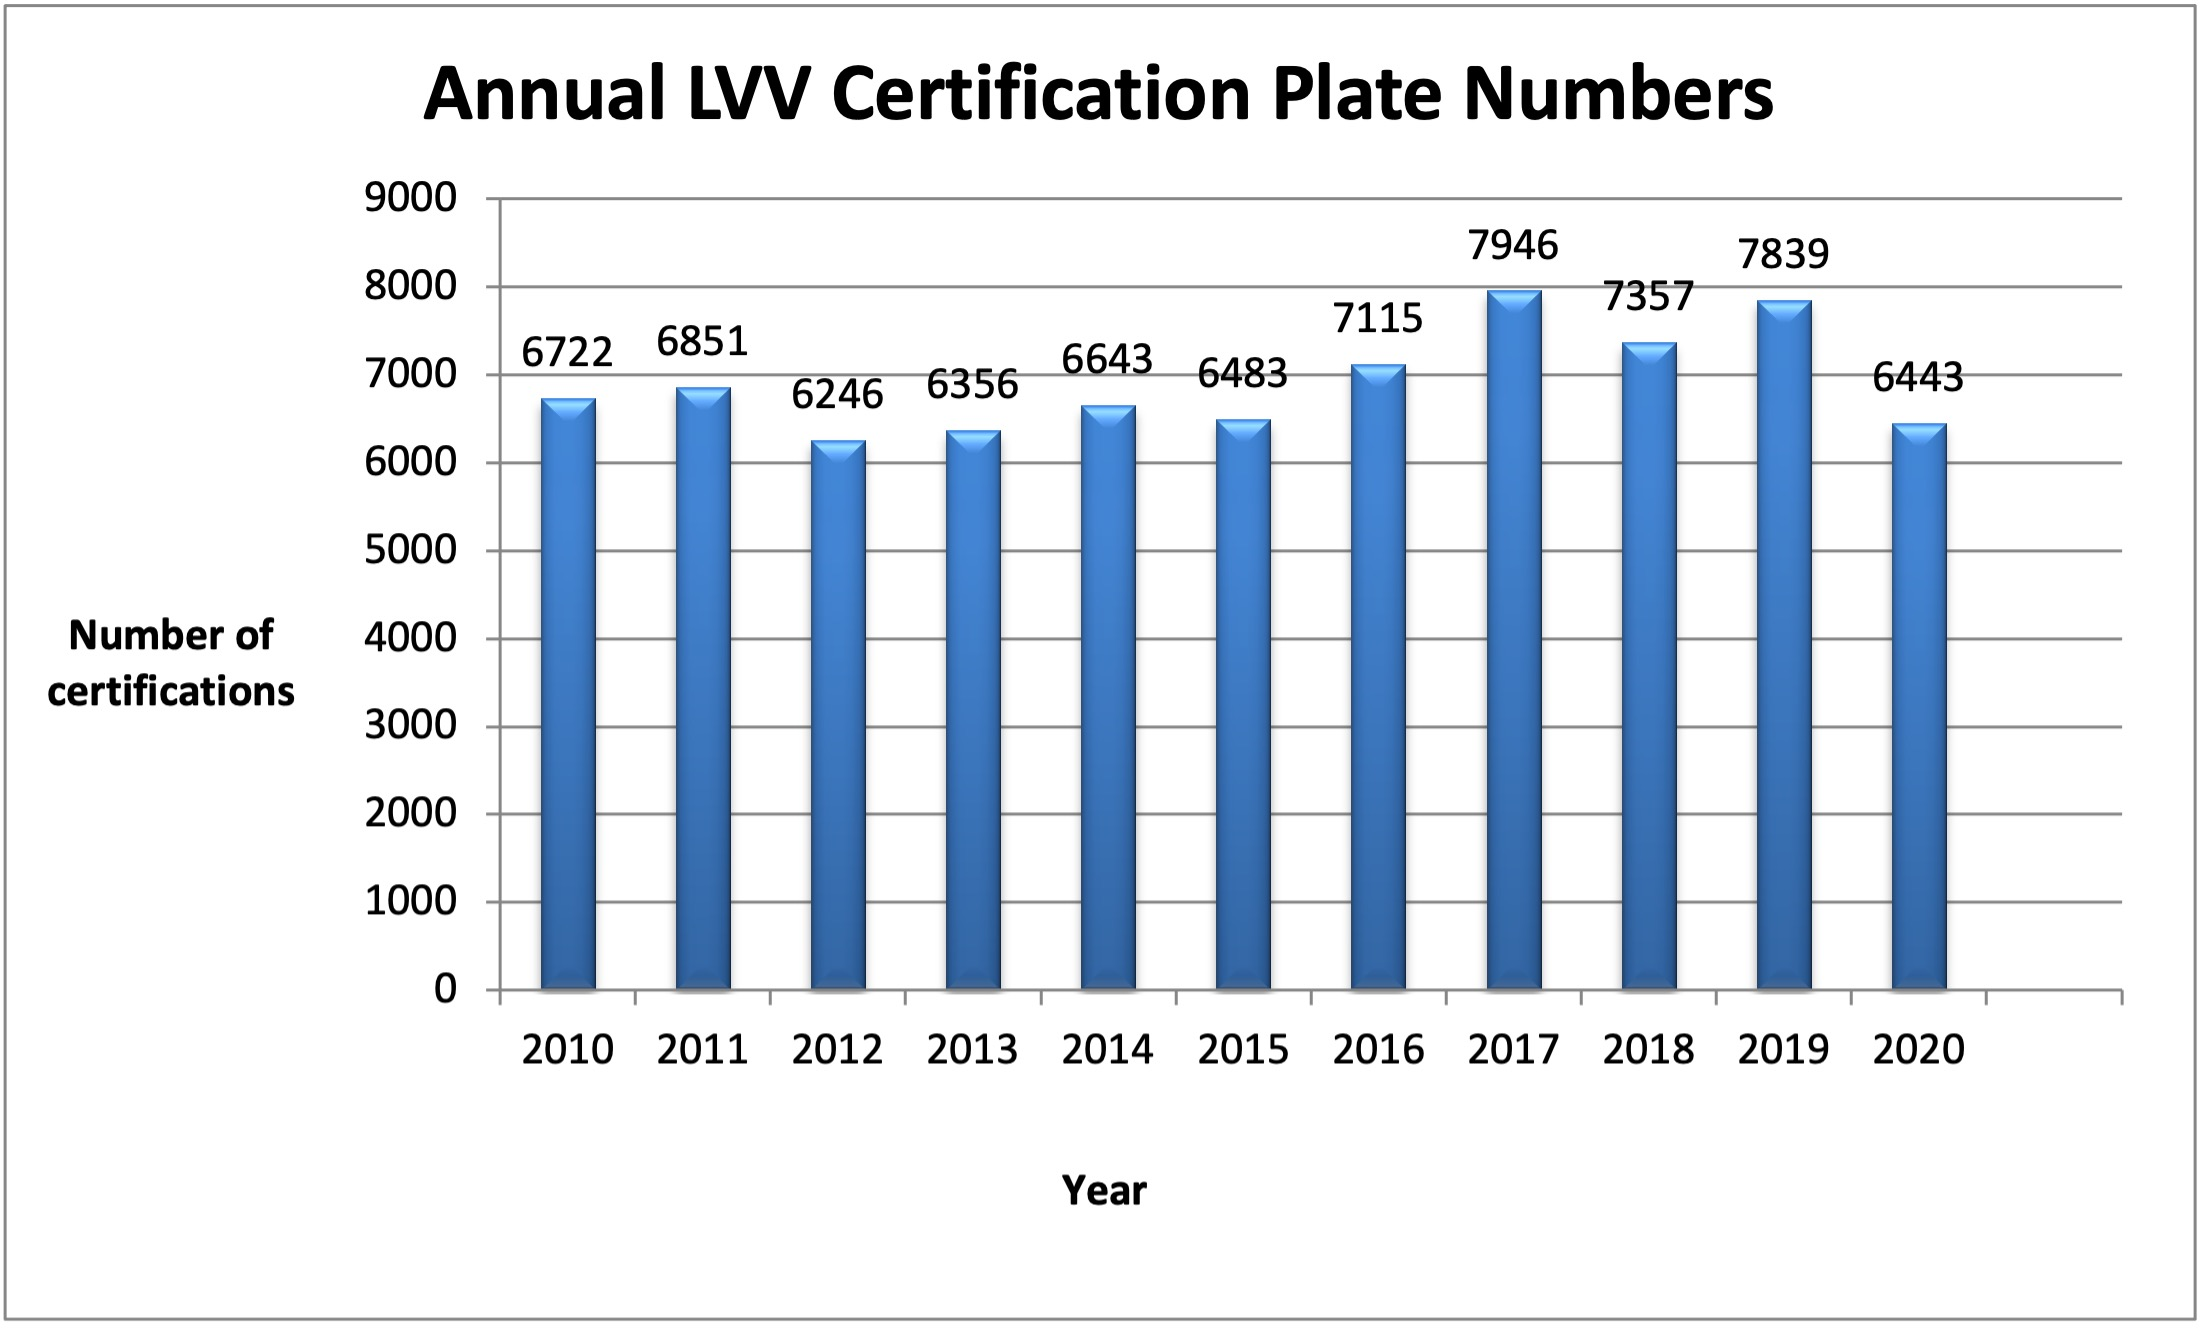 Annual LVV Certification Plate Numbers - Graph